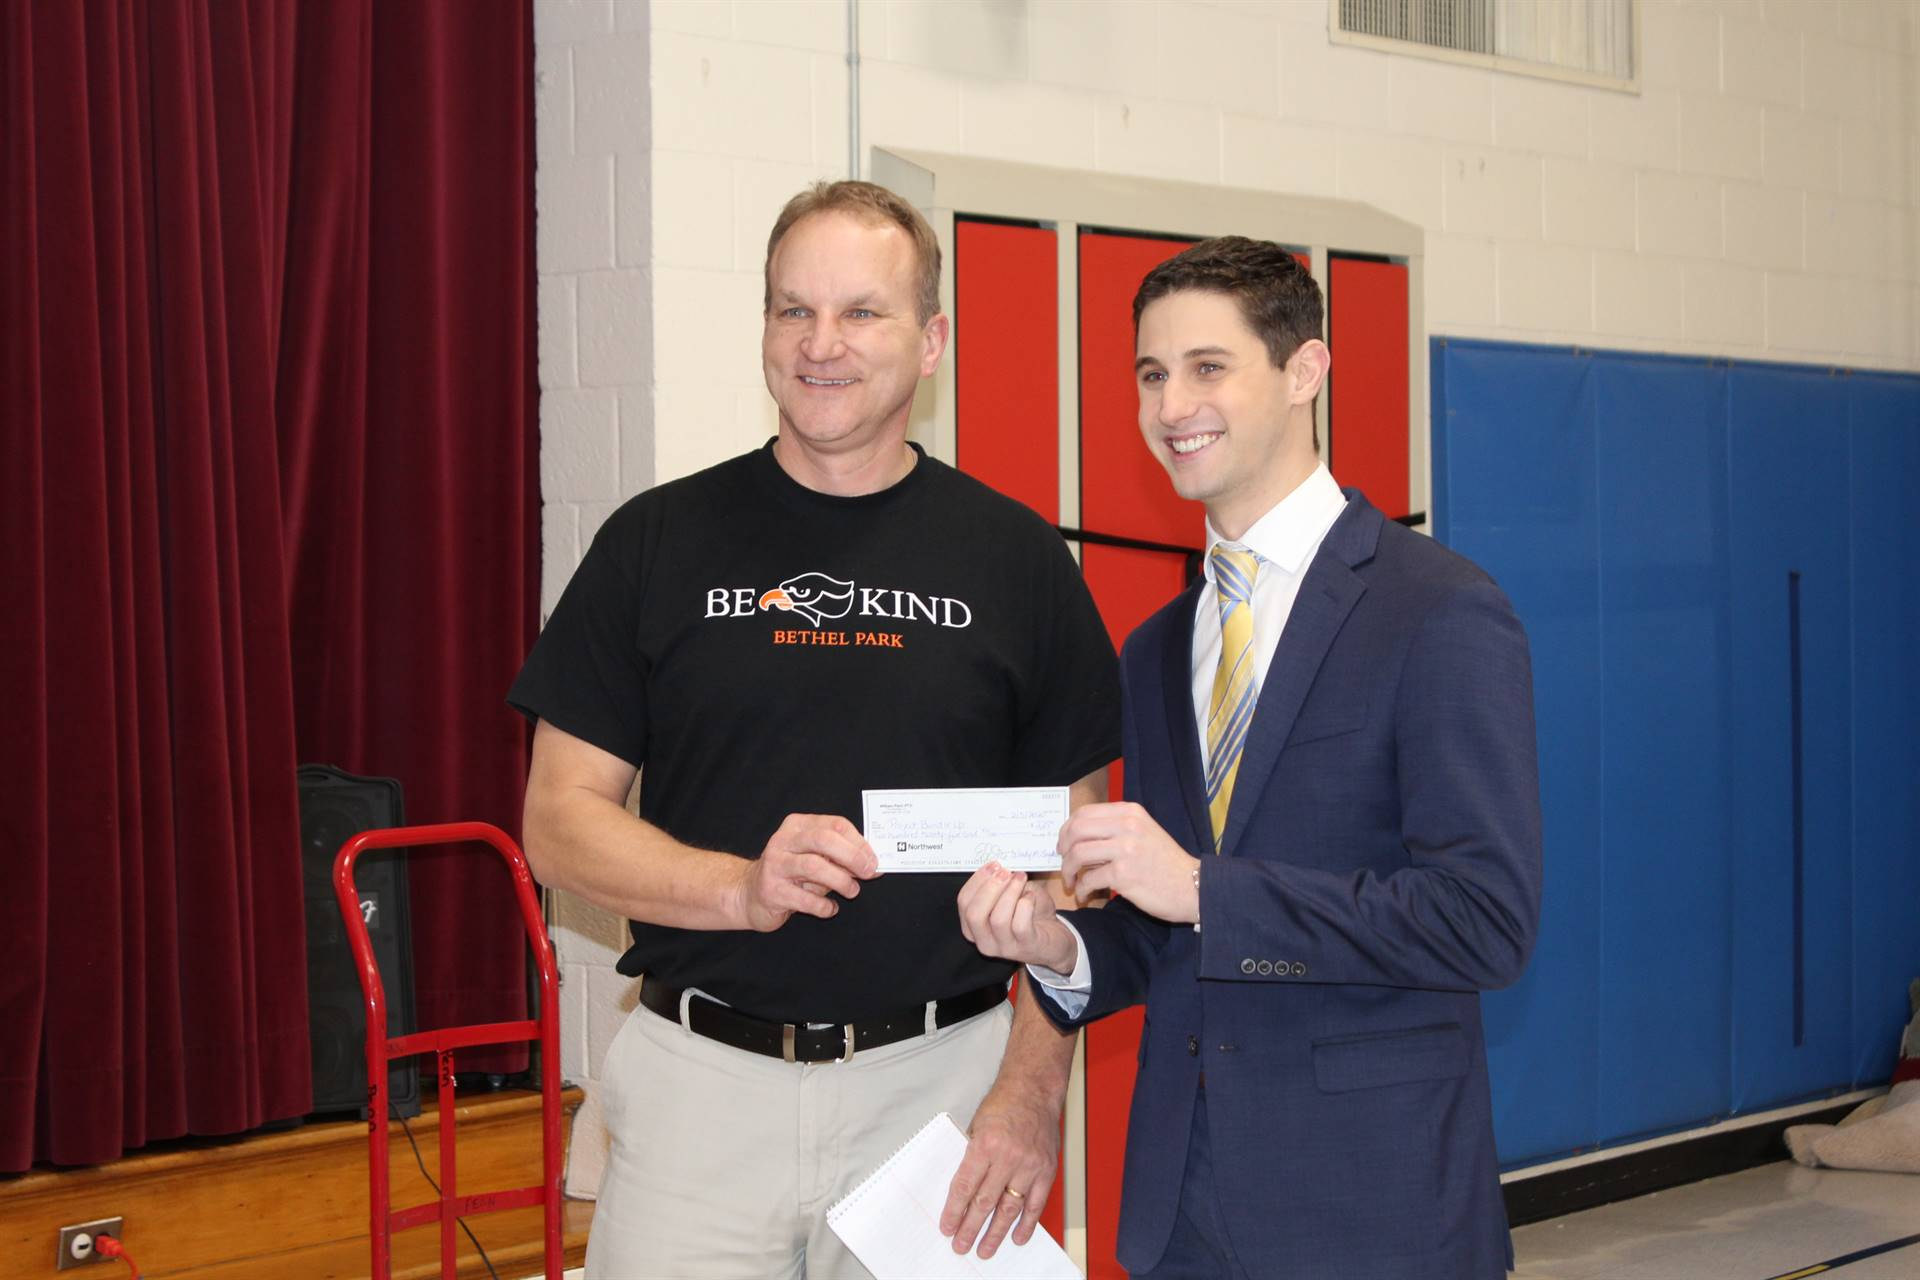 Mr. Lenosky giving a check to Alex Alecci